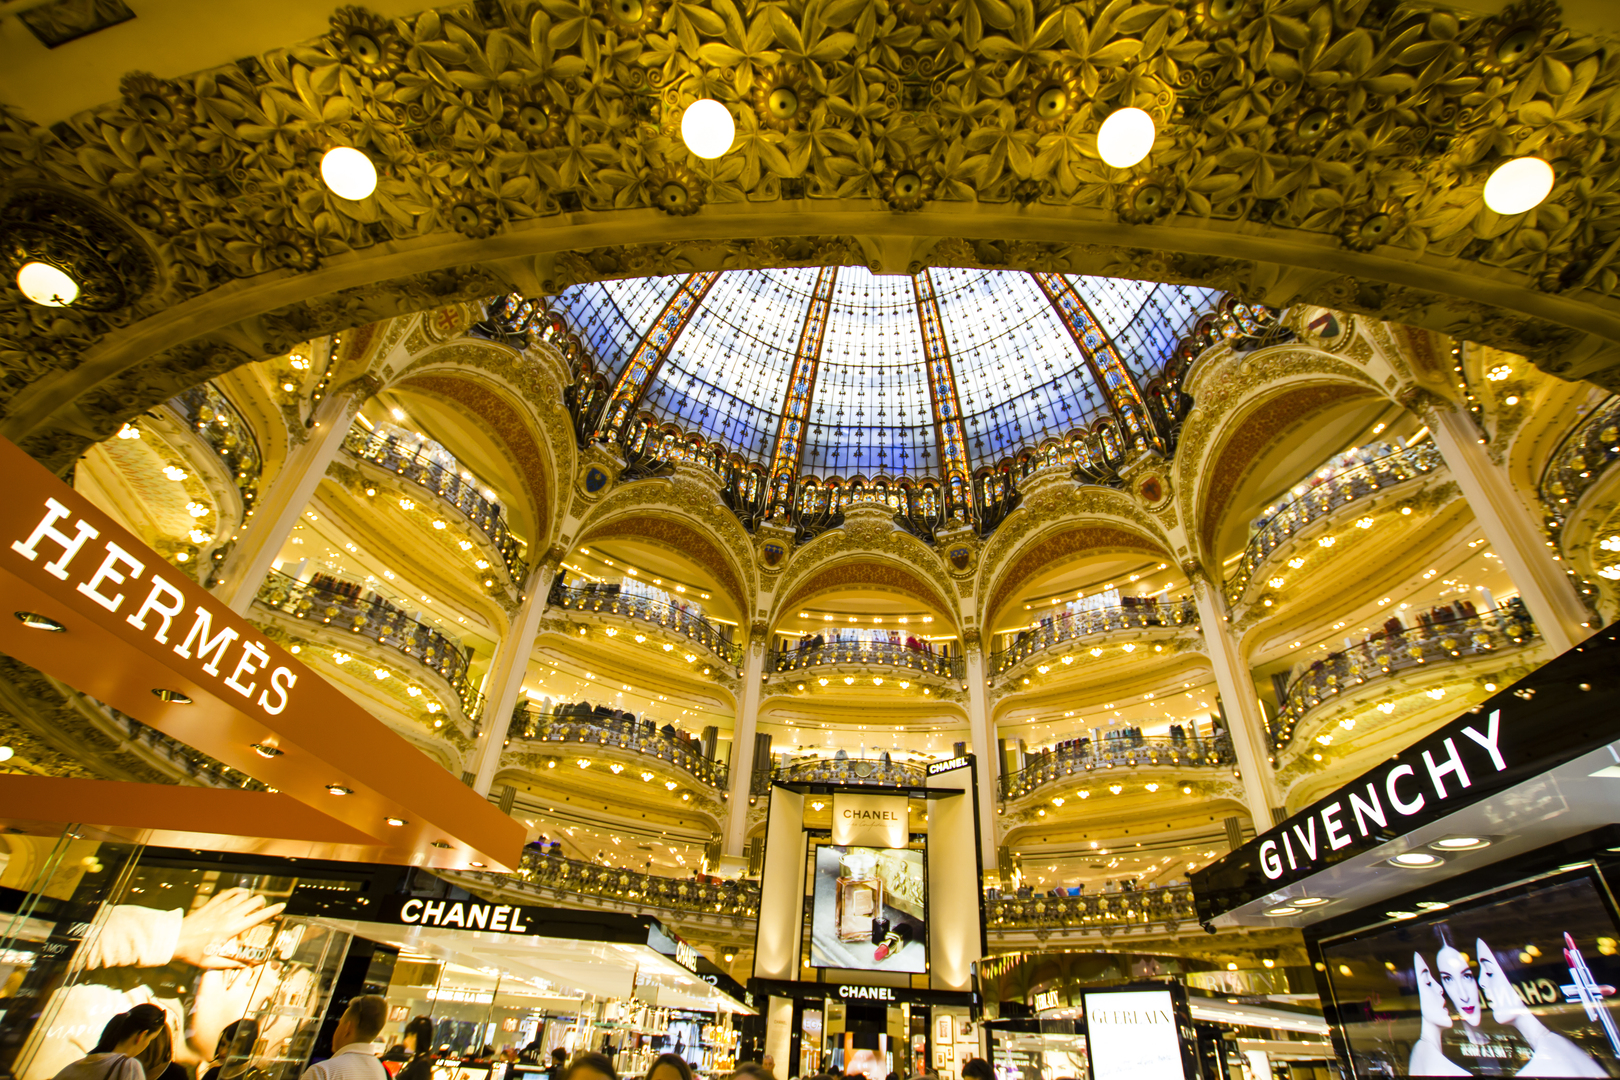 inside part of the famous Galeries Lafayette with it's brand stands Hermes, Chanel and Givenchy on April 24th 2013 in Paris, France